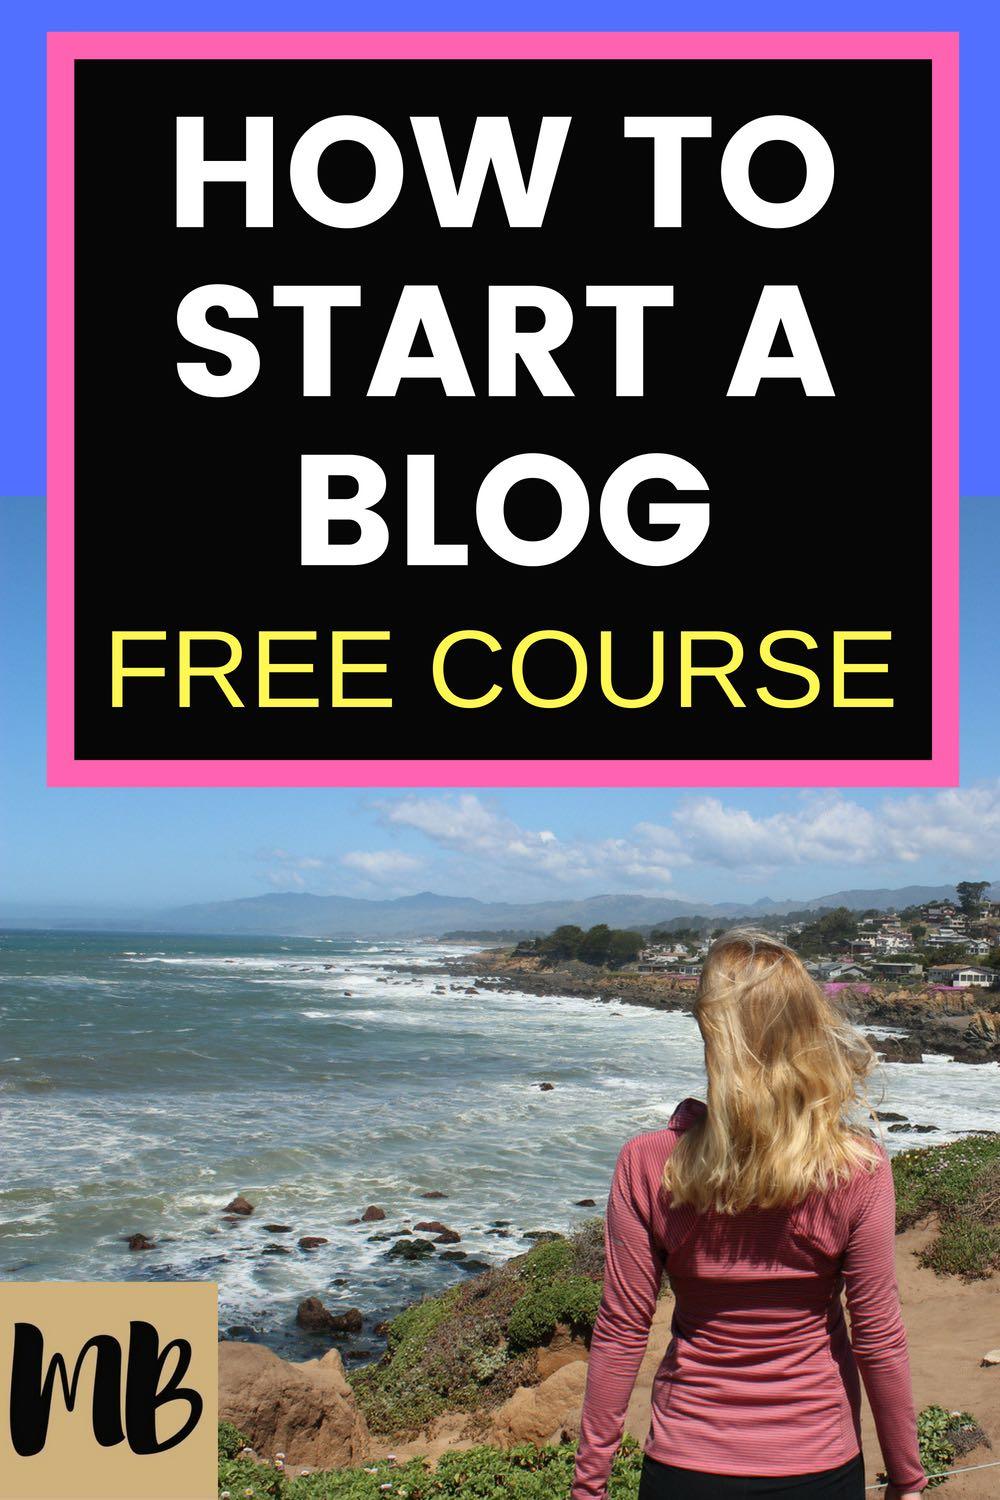 I made $25k last year with blogging | How to Start a Blog Free Course #blogging